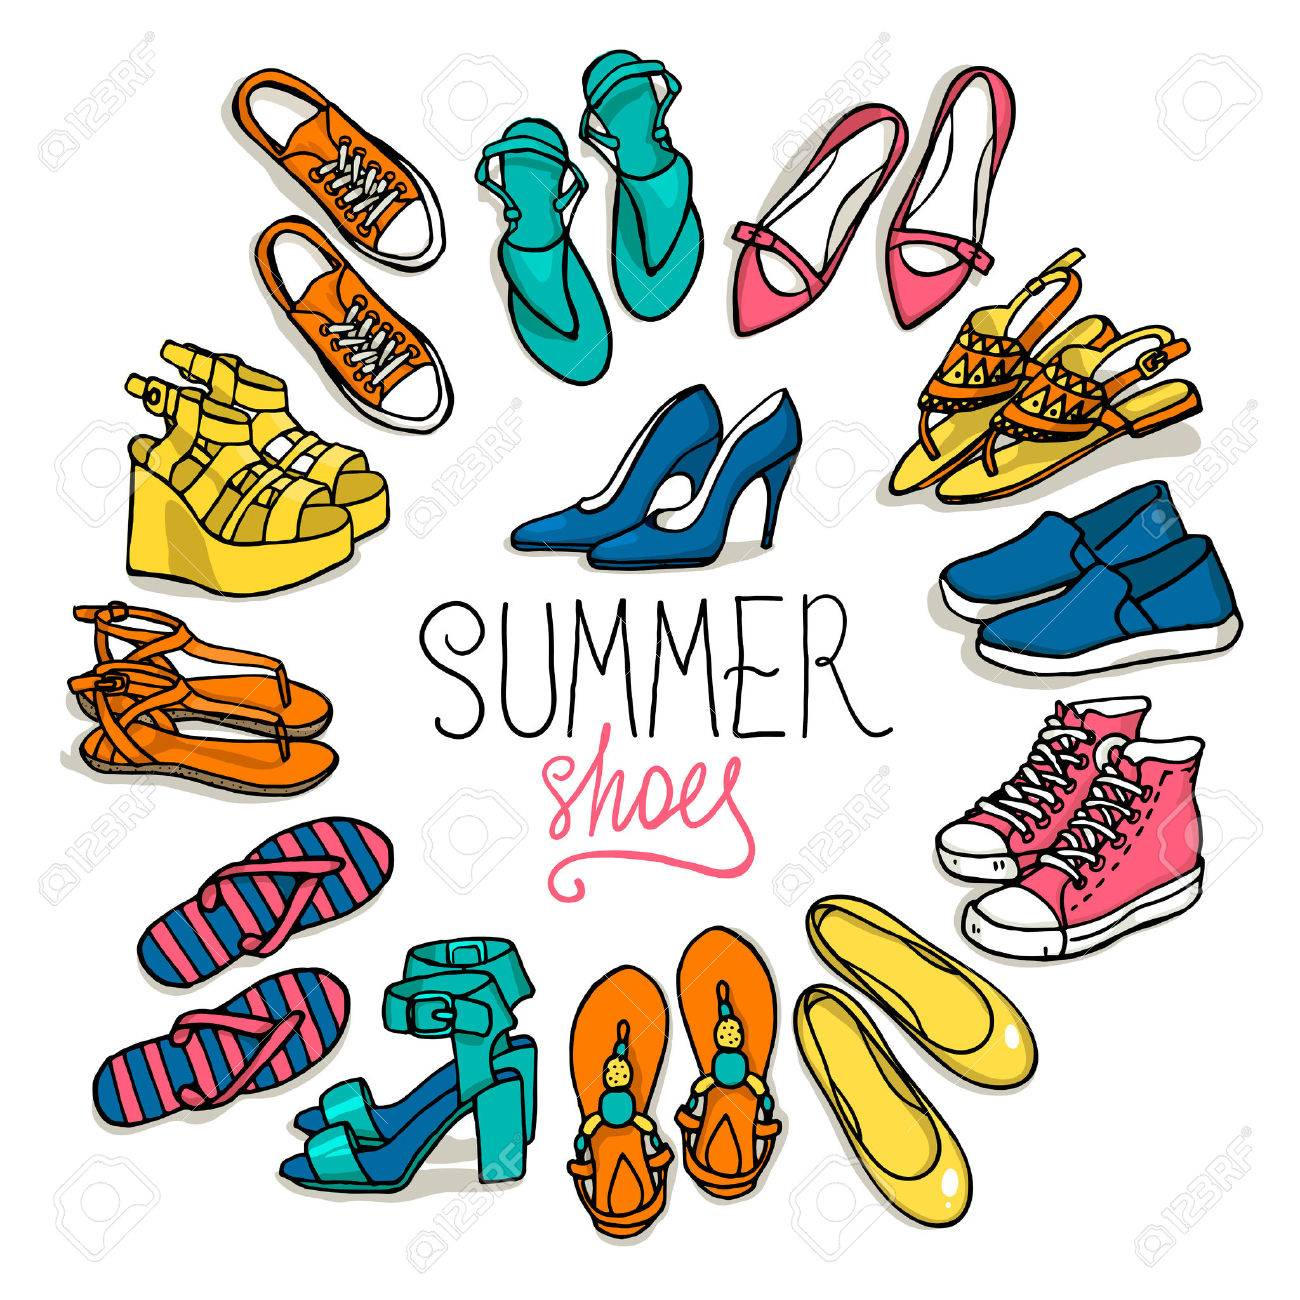 Vector illustration of woman shoes set. Hand-drown objects illustrations. Spring-summer fashion collection. - 51444485